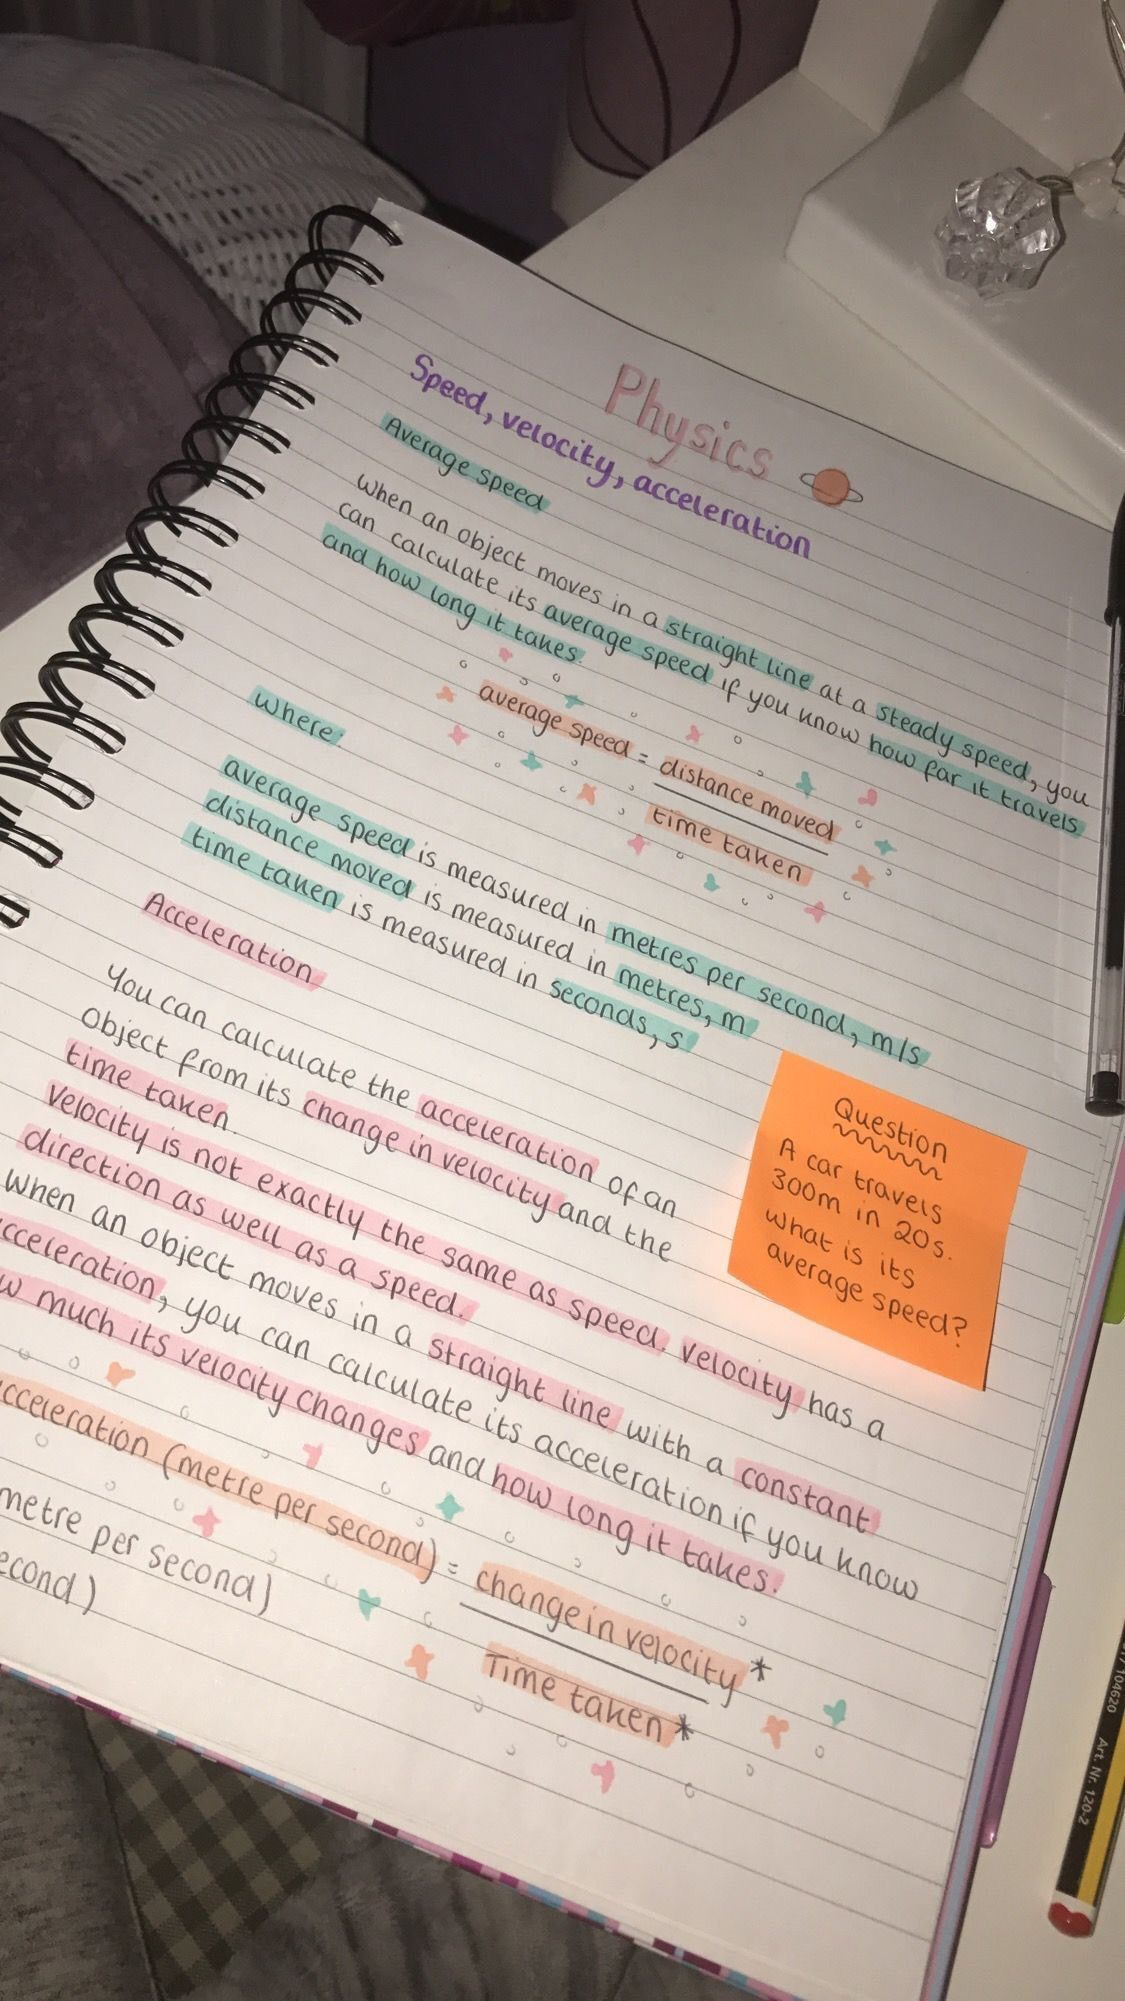 Pin By Lizbeth Mart On Apuntes School Organization Notes School Study Tips Physics Notes Speed writing changing it up